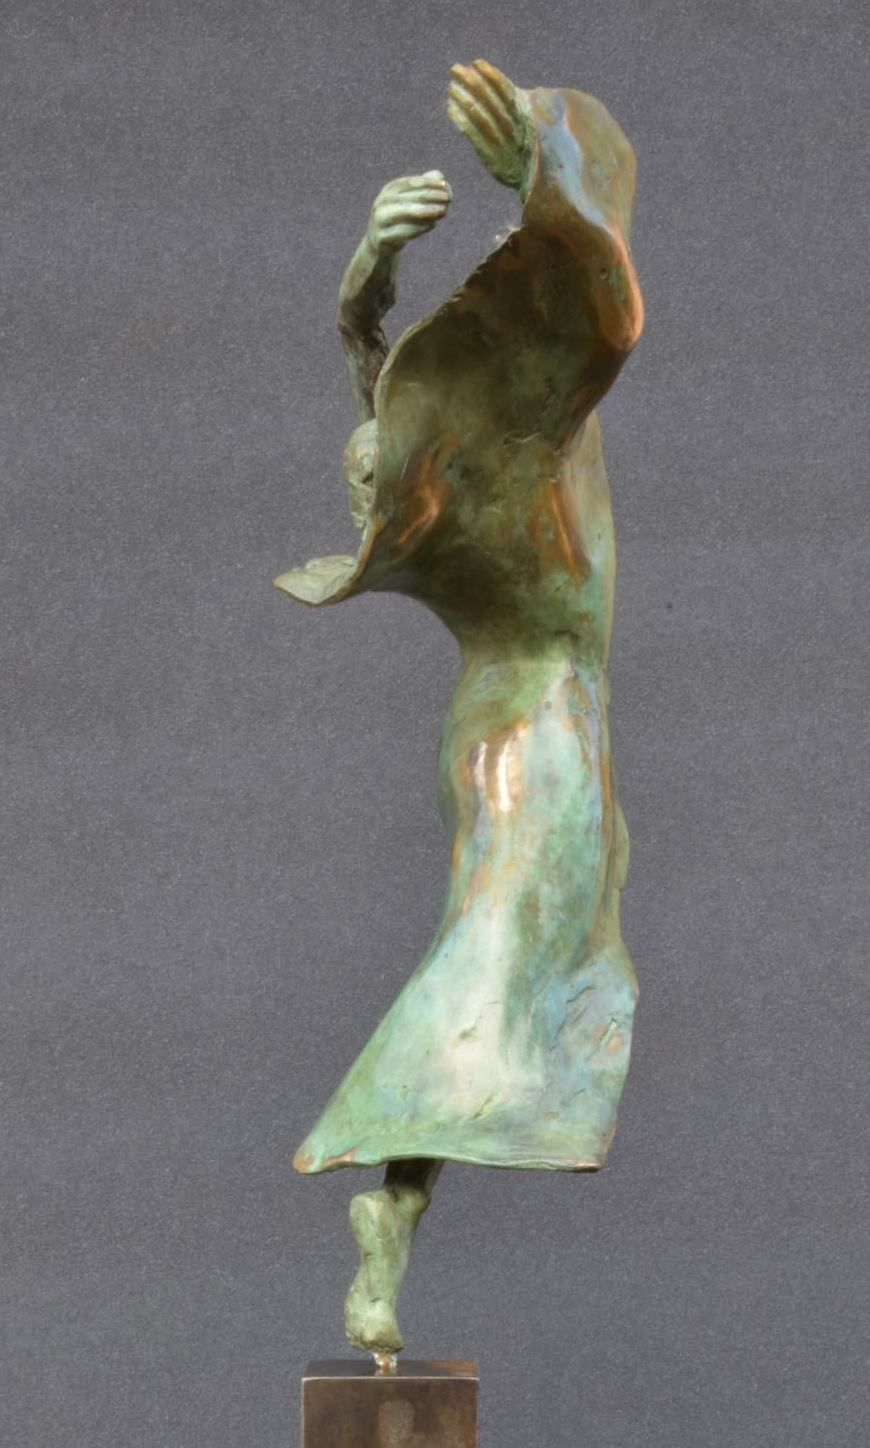 Danseuse moderne III,Yann Guillon,Sculpture contemporaine, detail 3